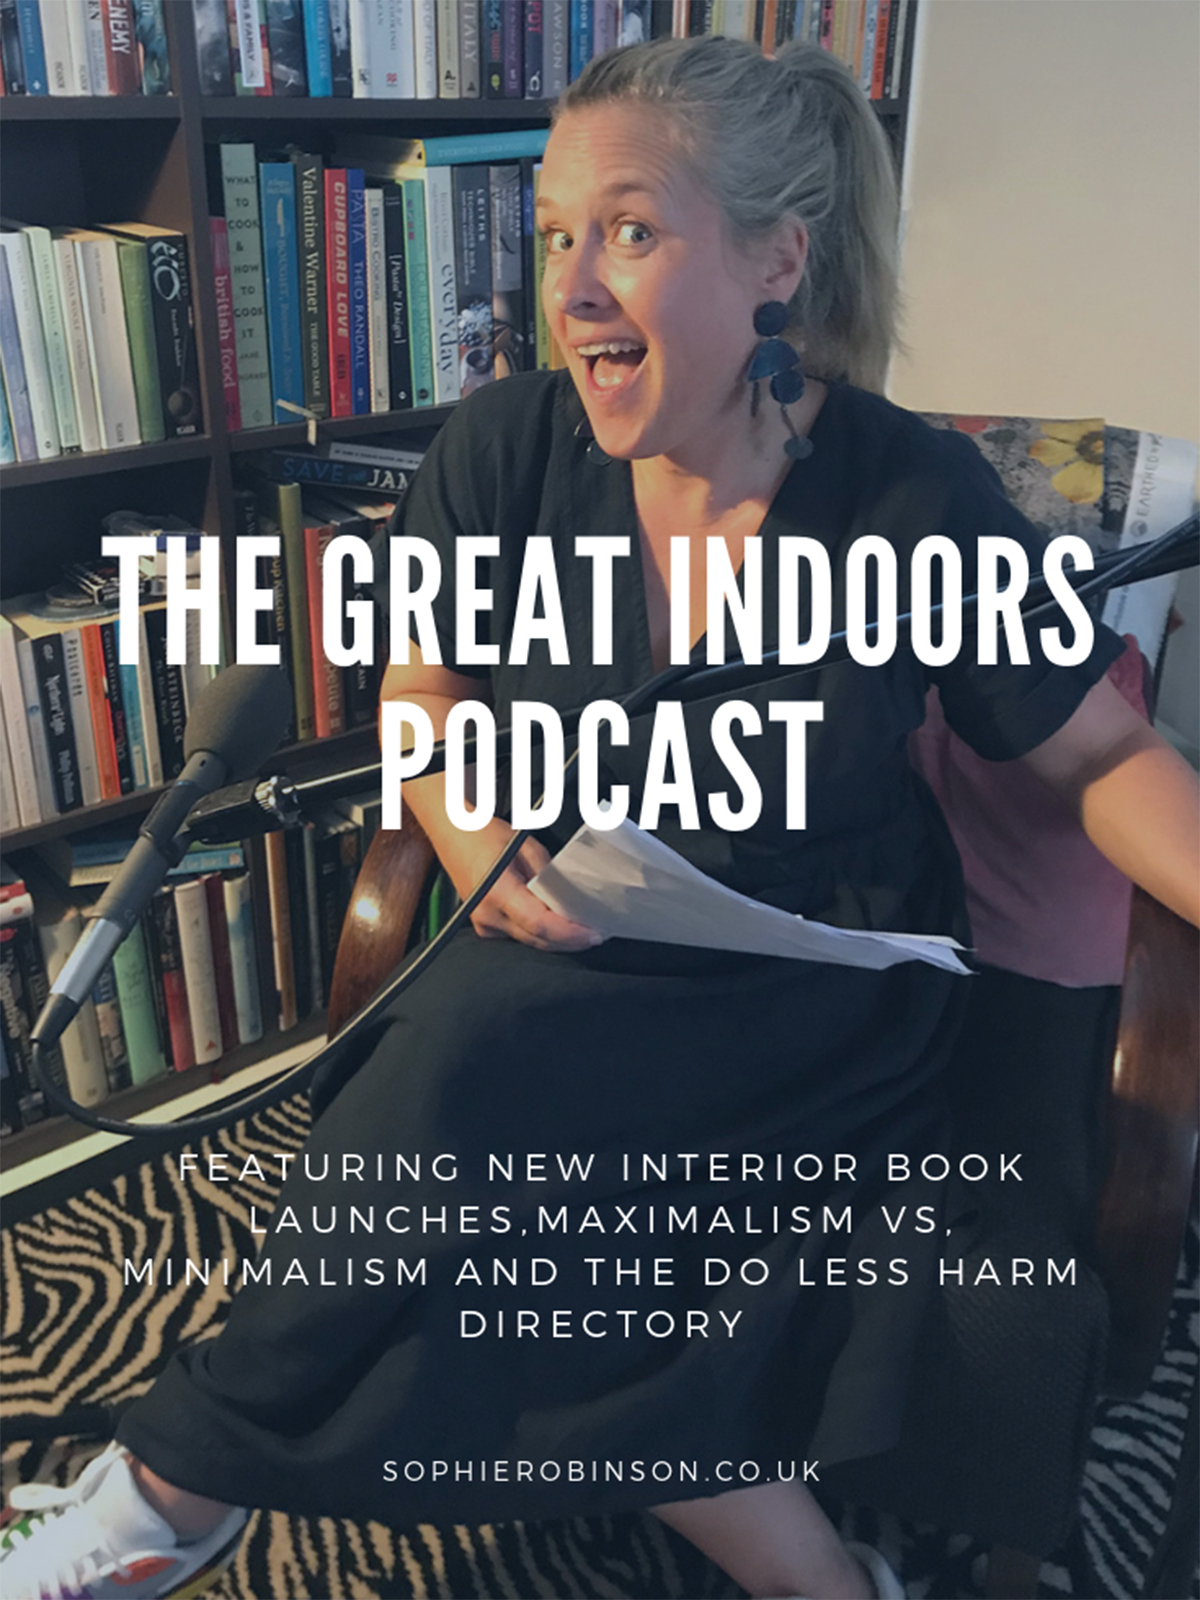 The great indoors podcast's Sophie Robinson recording at the home of co-host Kate Watson-Smyth who discuss interior dilemmas, book launches, maximalism vs minimalism and the do less harm directory #thegreatindoors #sophierobinson #podcast